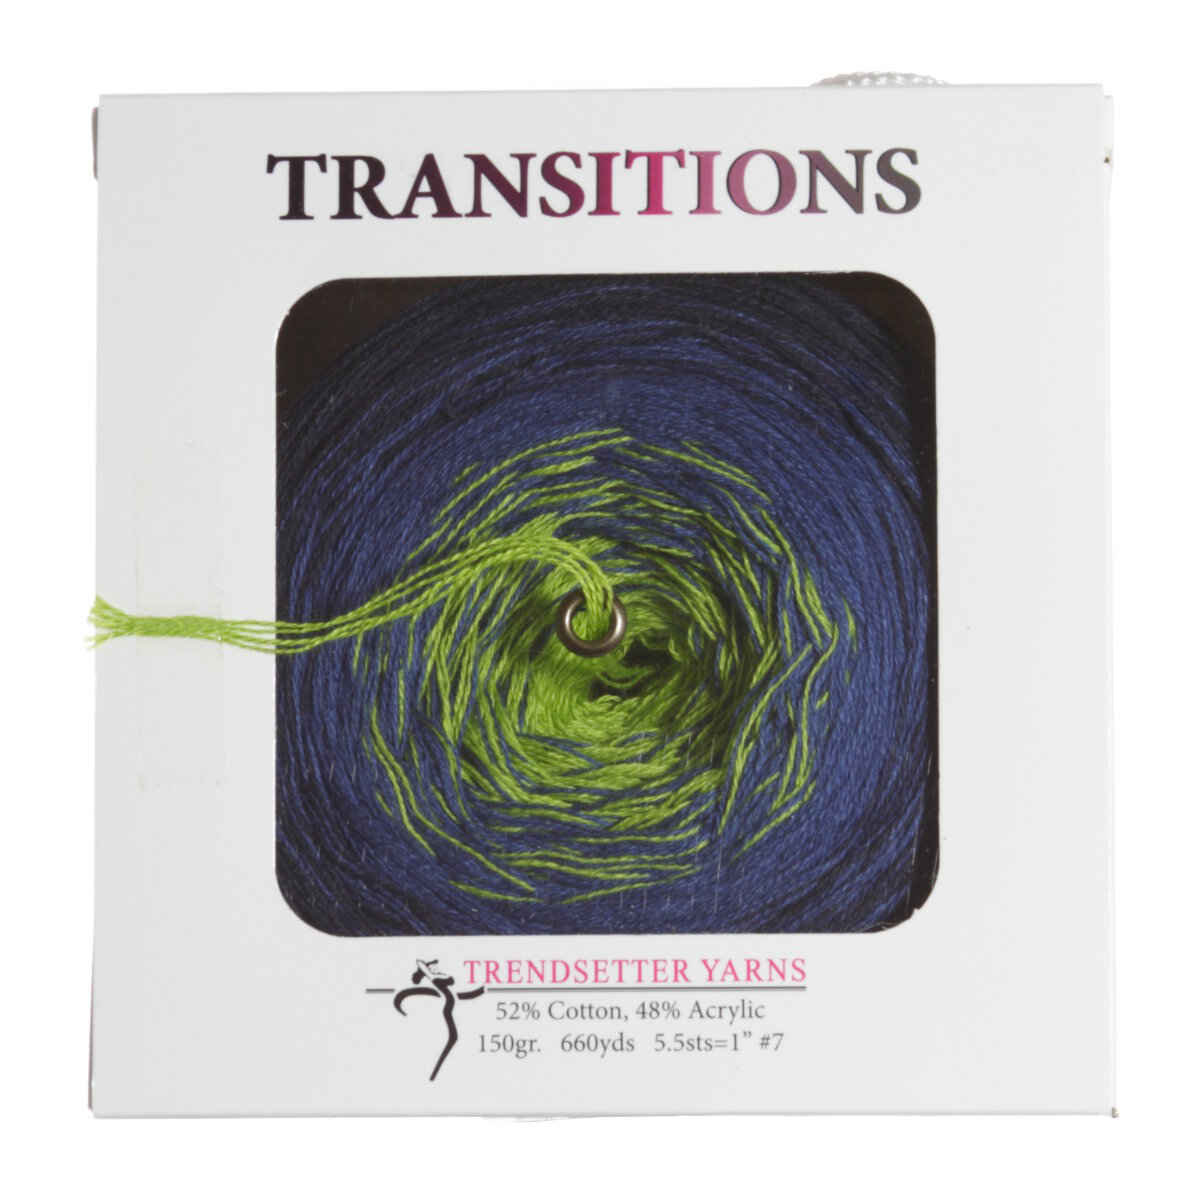 3 3 transitions 230 four men, three eras, two transitions: modern missions ing however, let's be careful: the average citizen of israel was no more oblivious to the second part of gen 12:1-3.